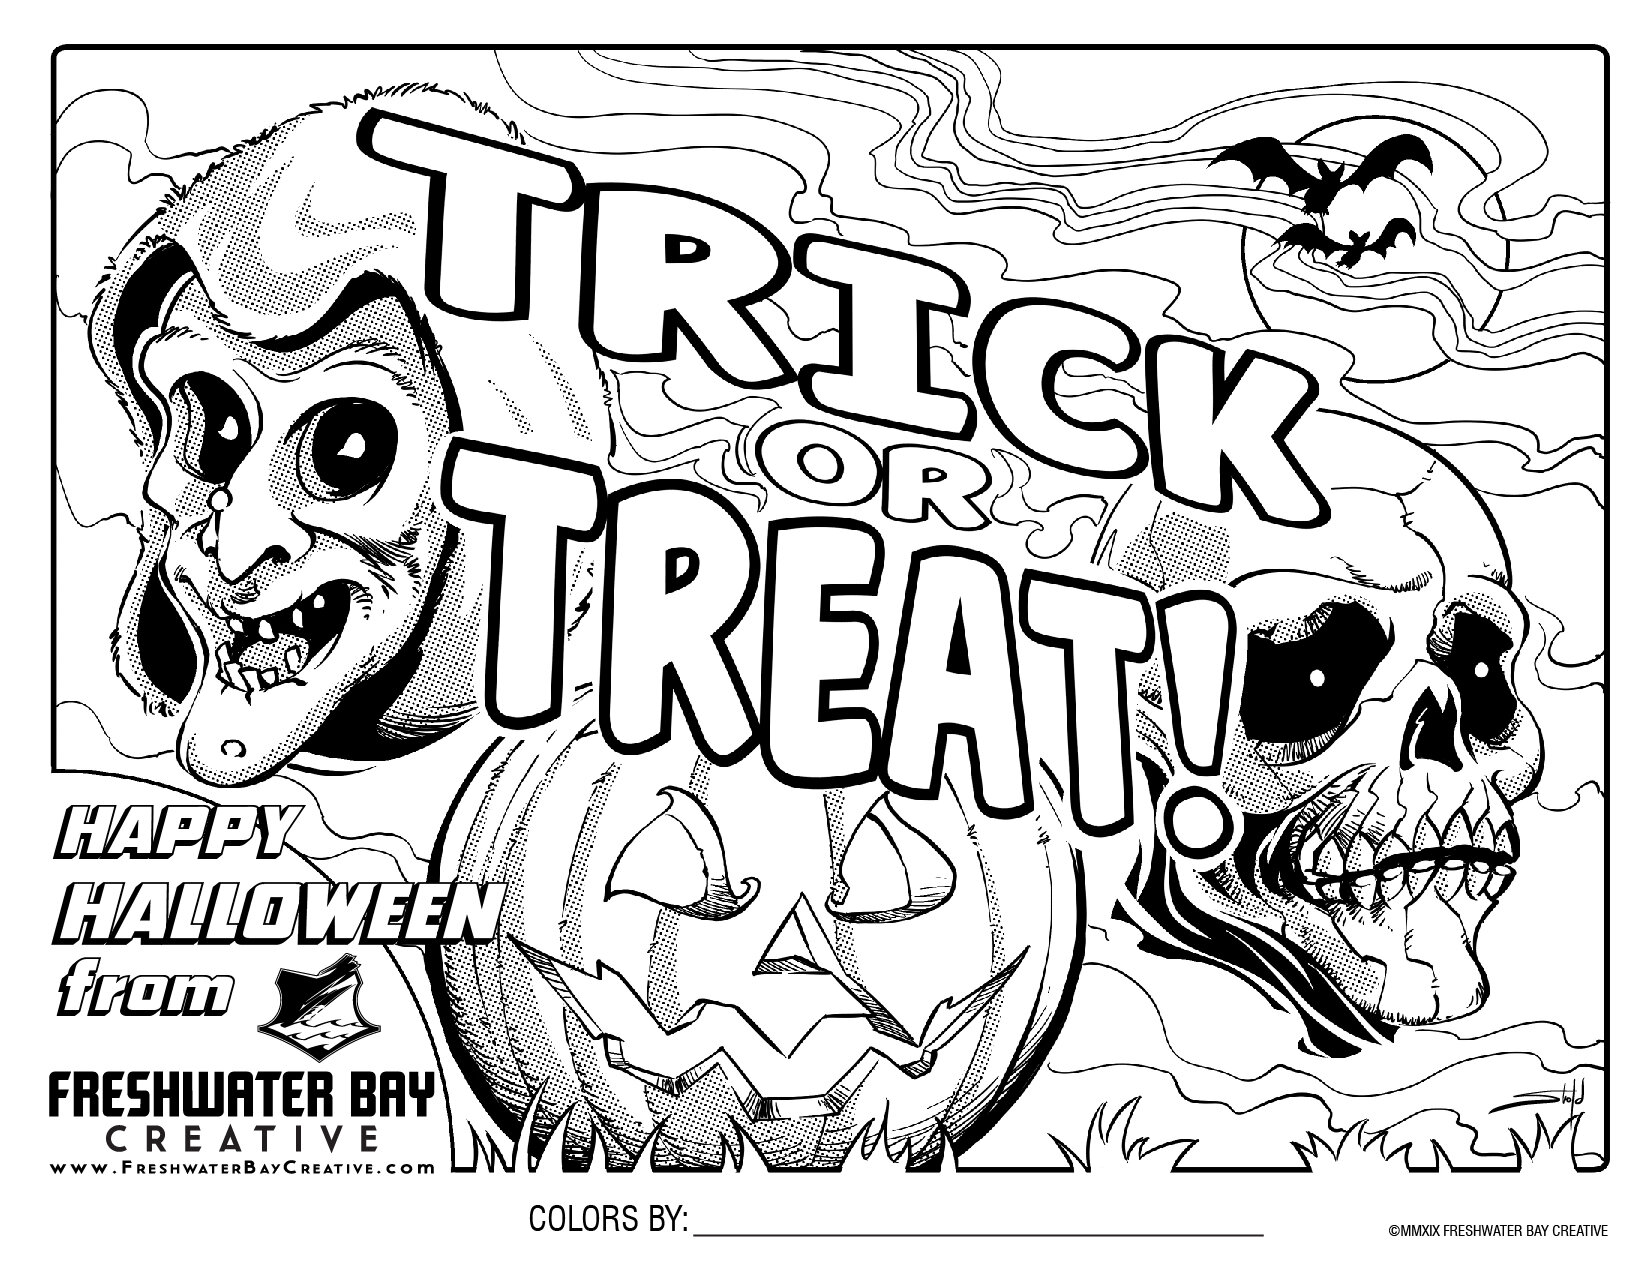 FBC Halloween Coloring Page by Kyle Shold